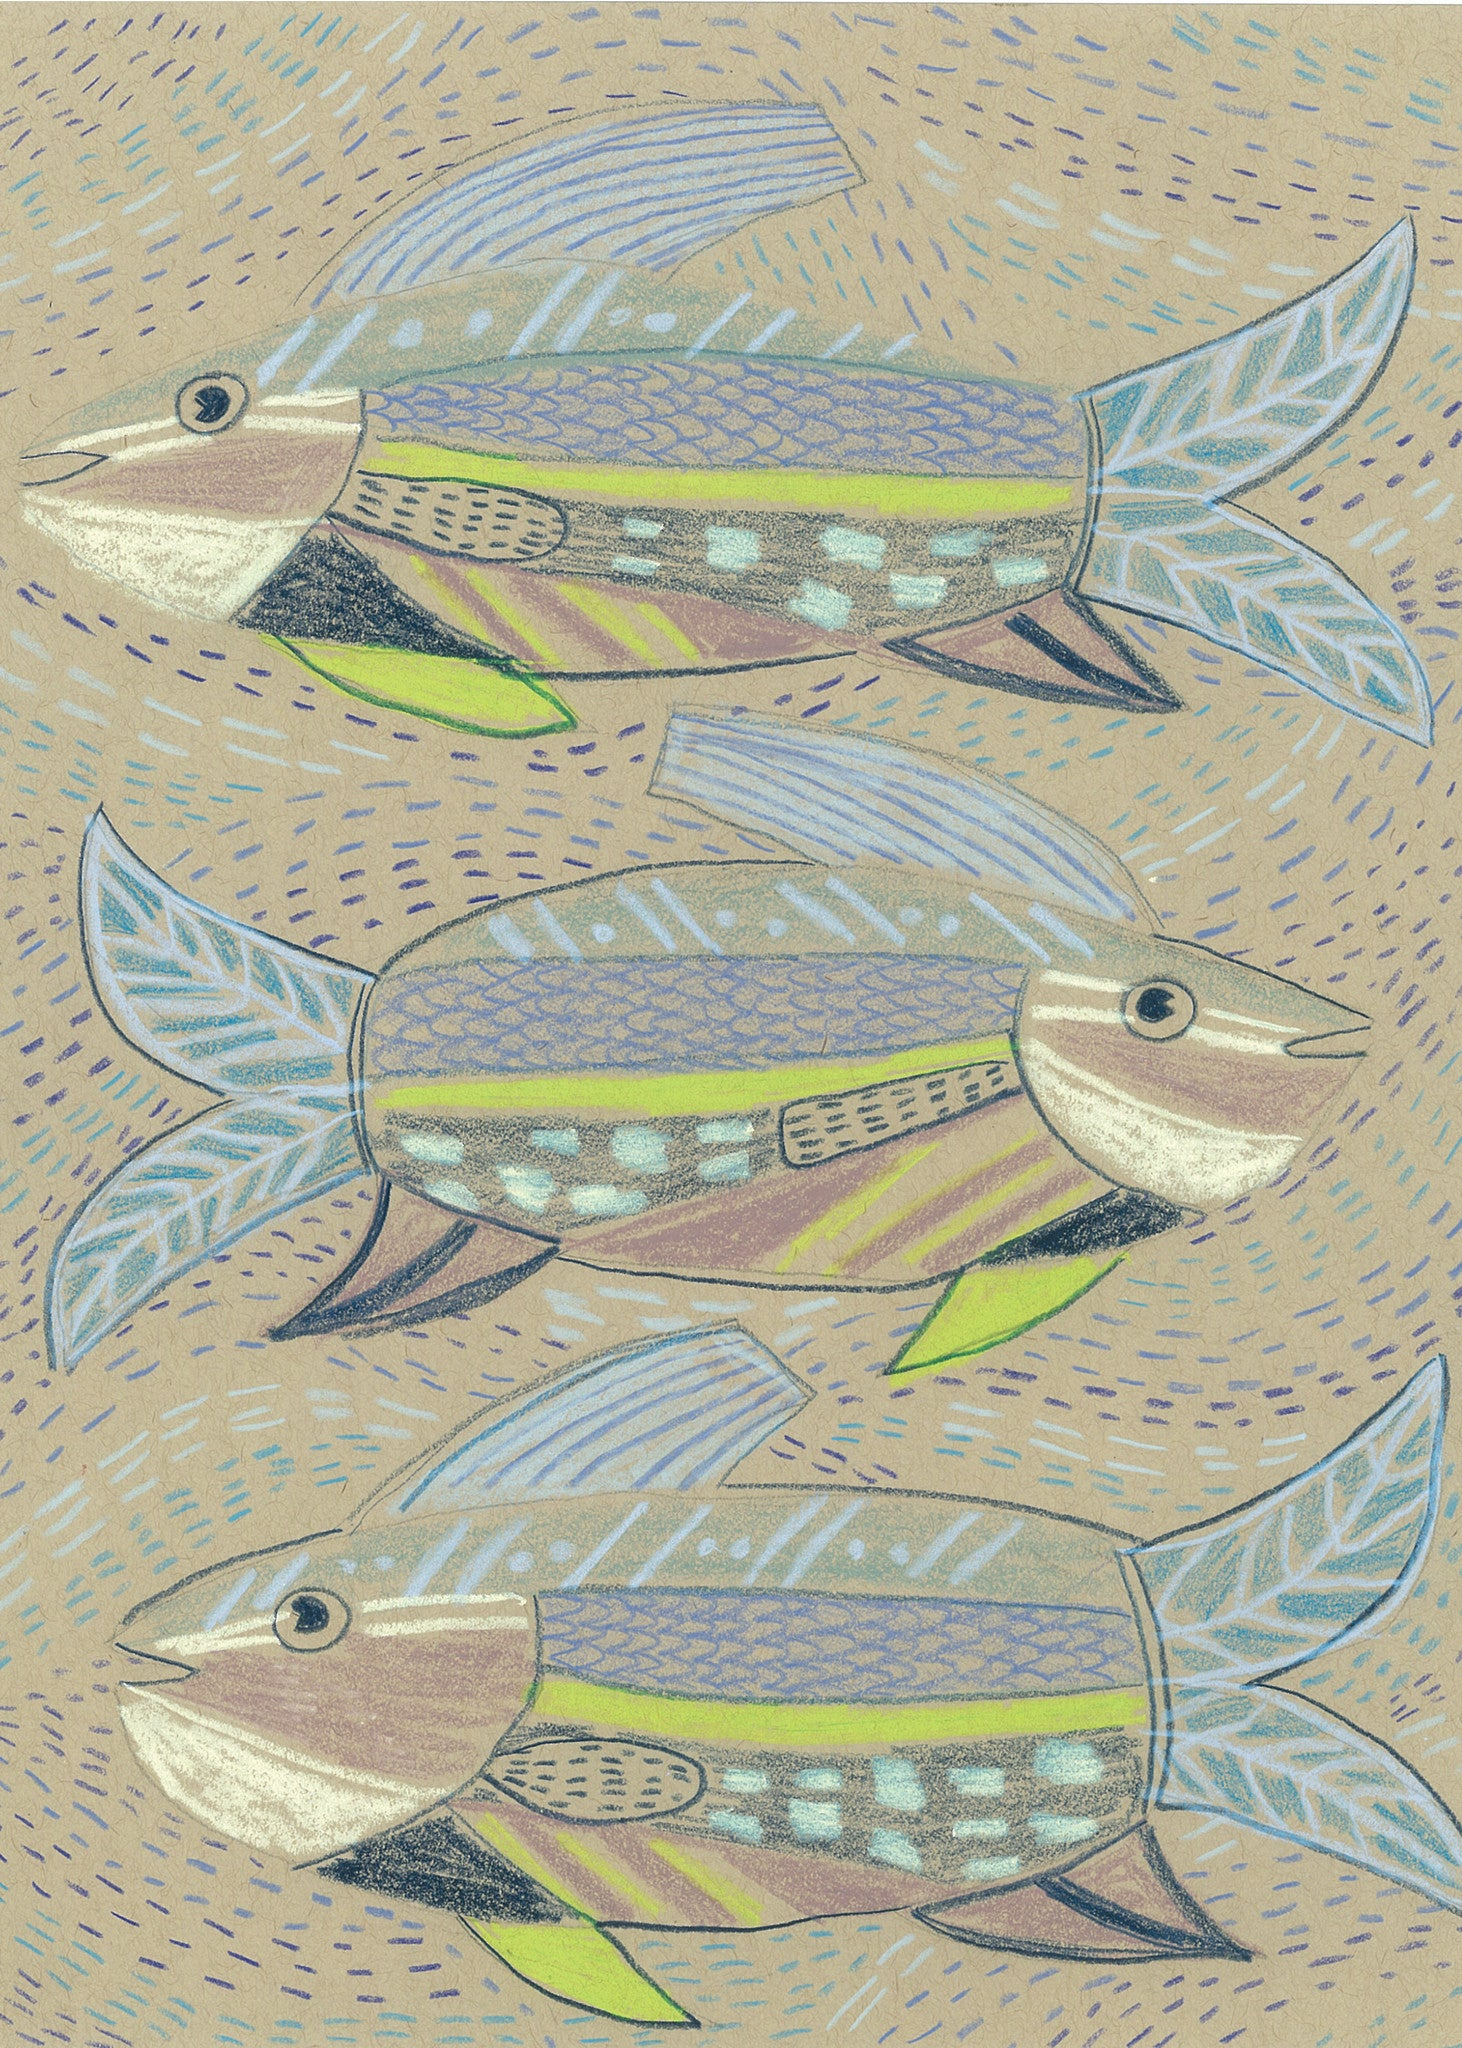 lulie wallace fish